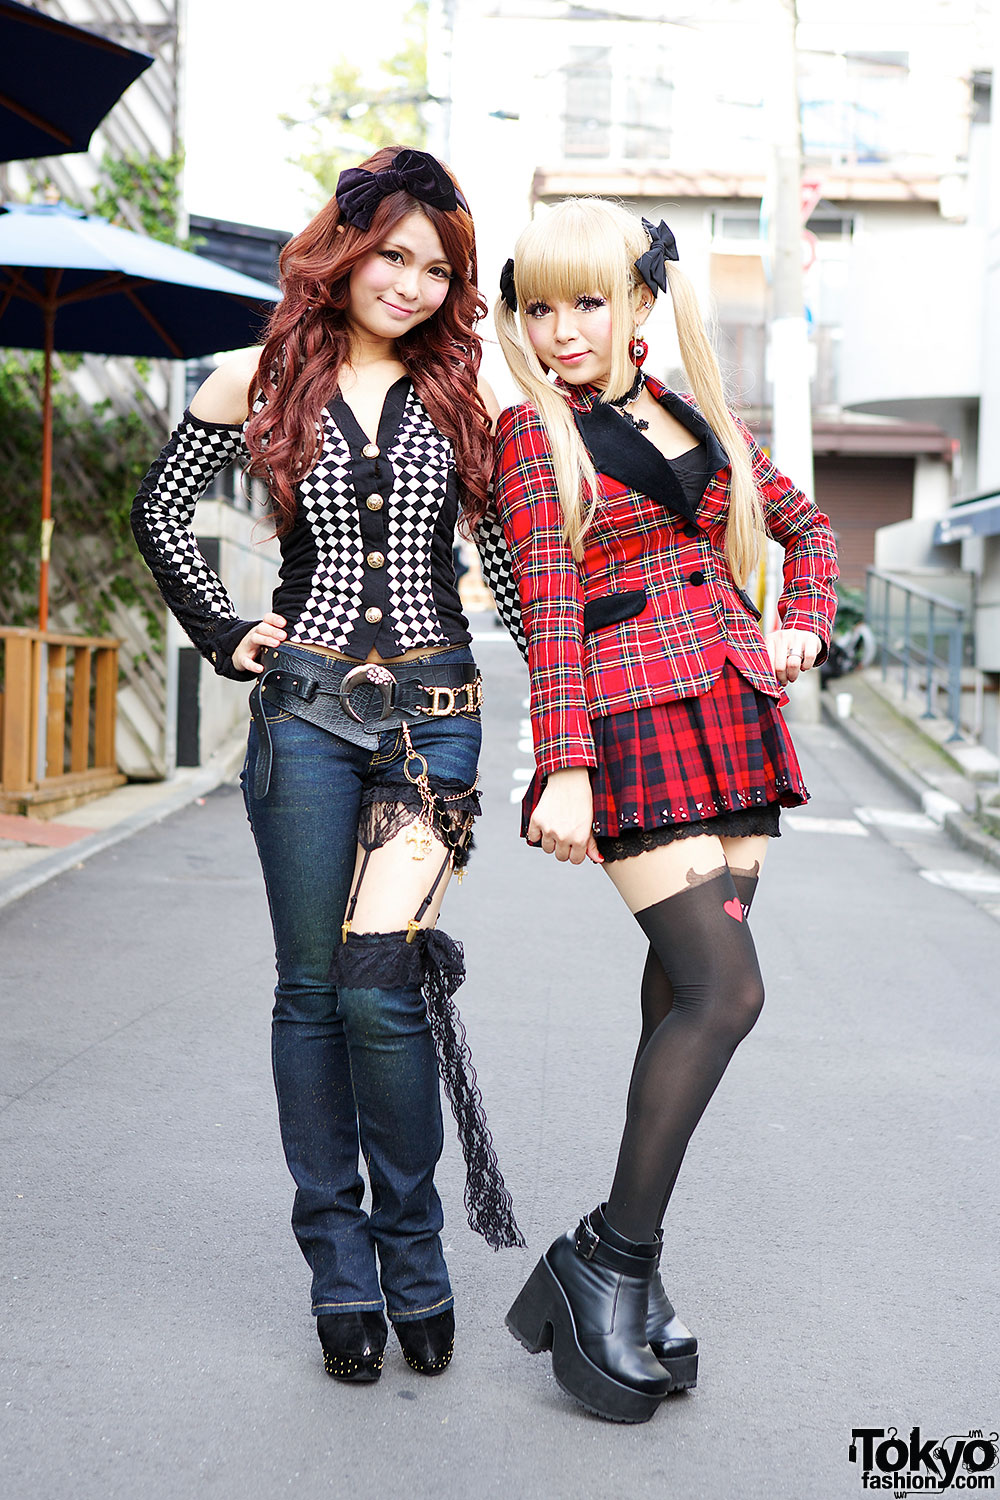 image Japanese gyaru schoolgirls with tan skin and makeup showing